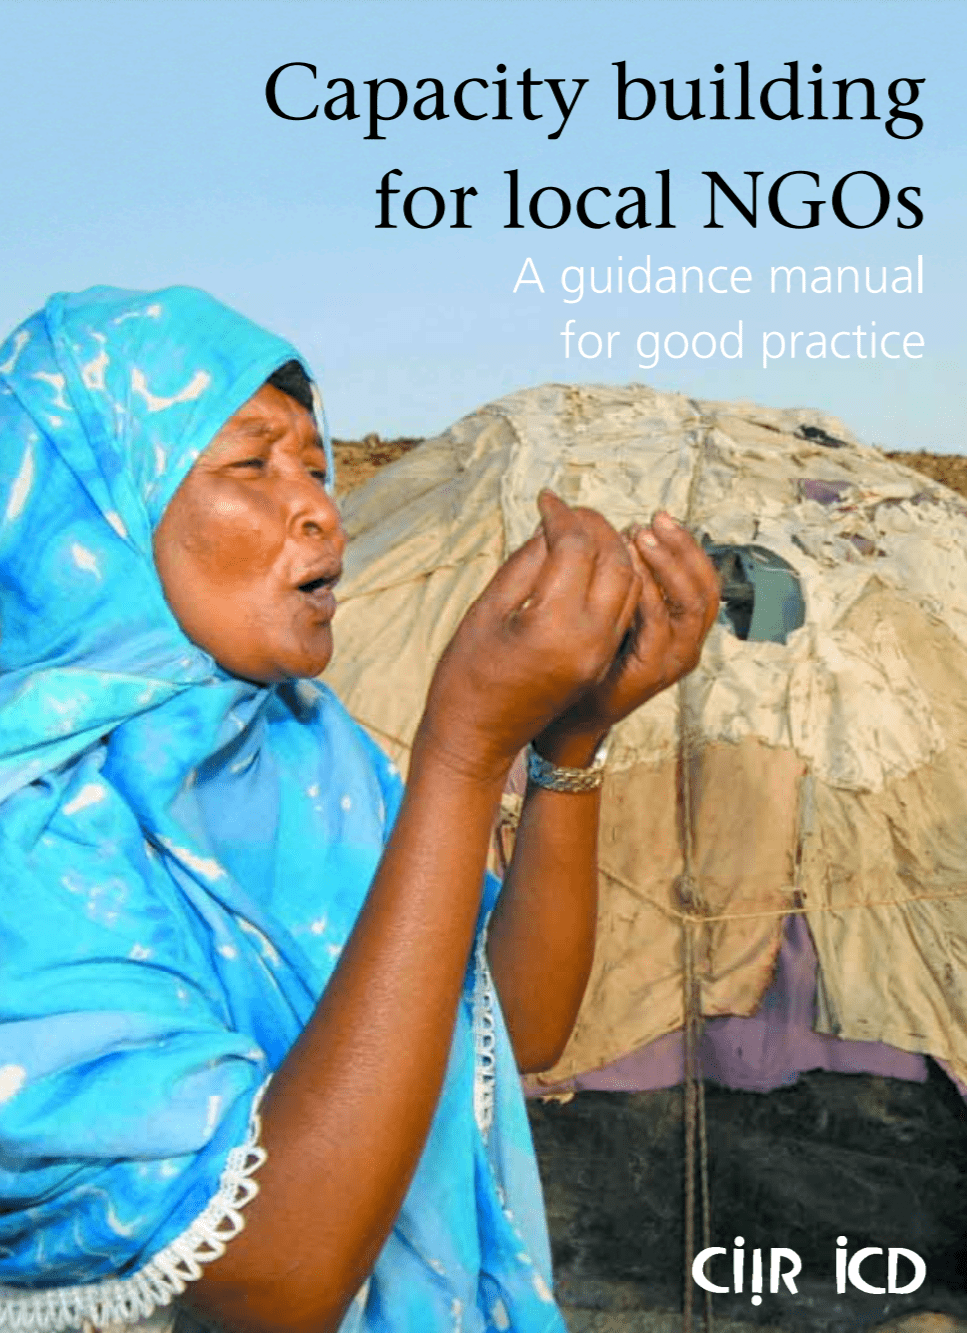 """The image shows the cover of the manual titled """"Capacity Building for Local NGOs: A Guidance Manual for Good Practice"""". A woman with a bright blue head covering stands outside, mouth open as if speaking, gesturing with her hands."""